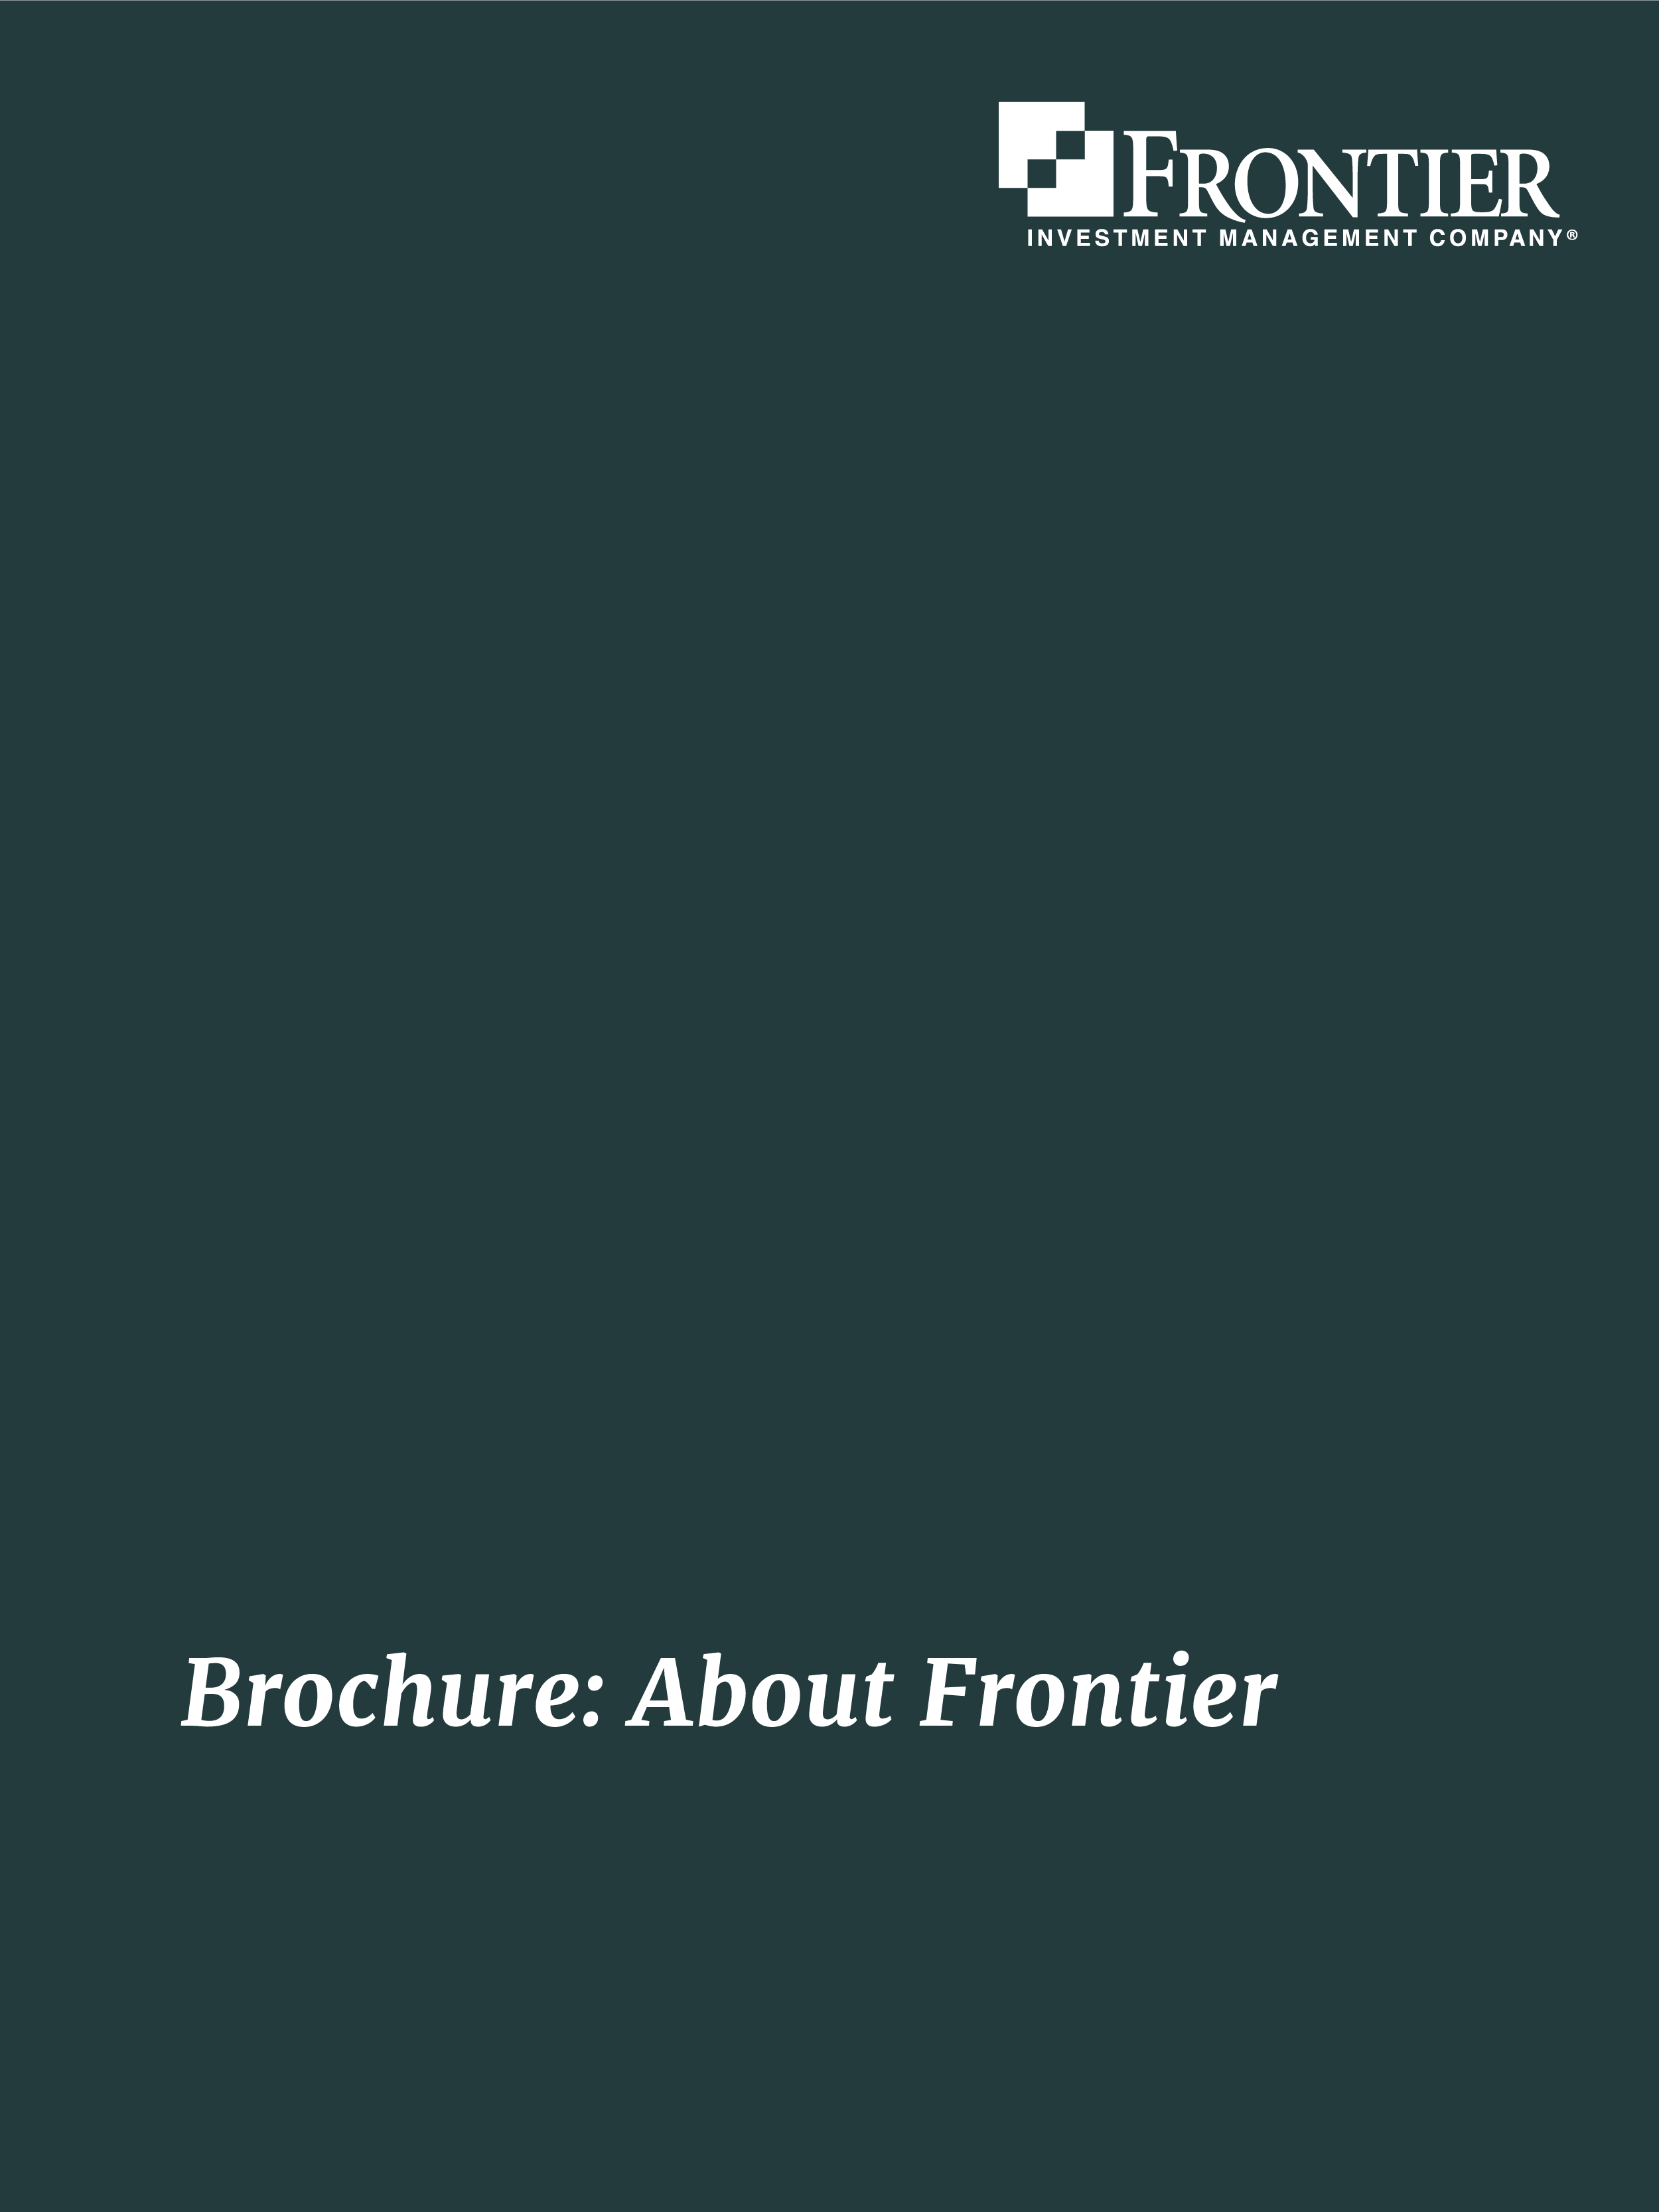 Brochure: About Frontier